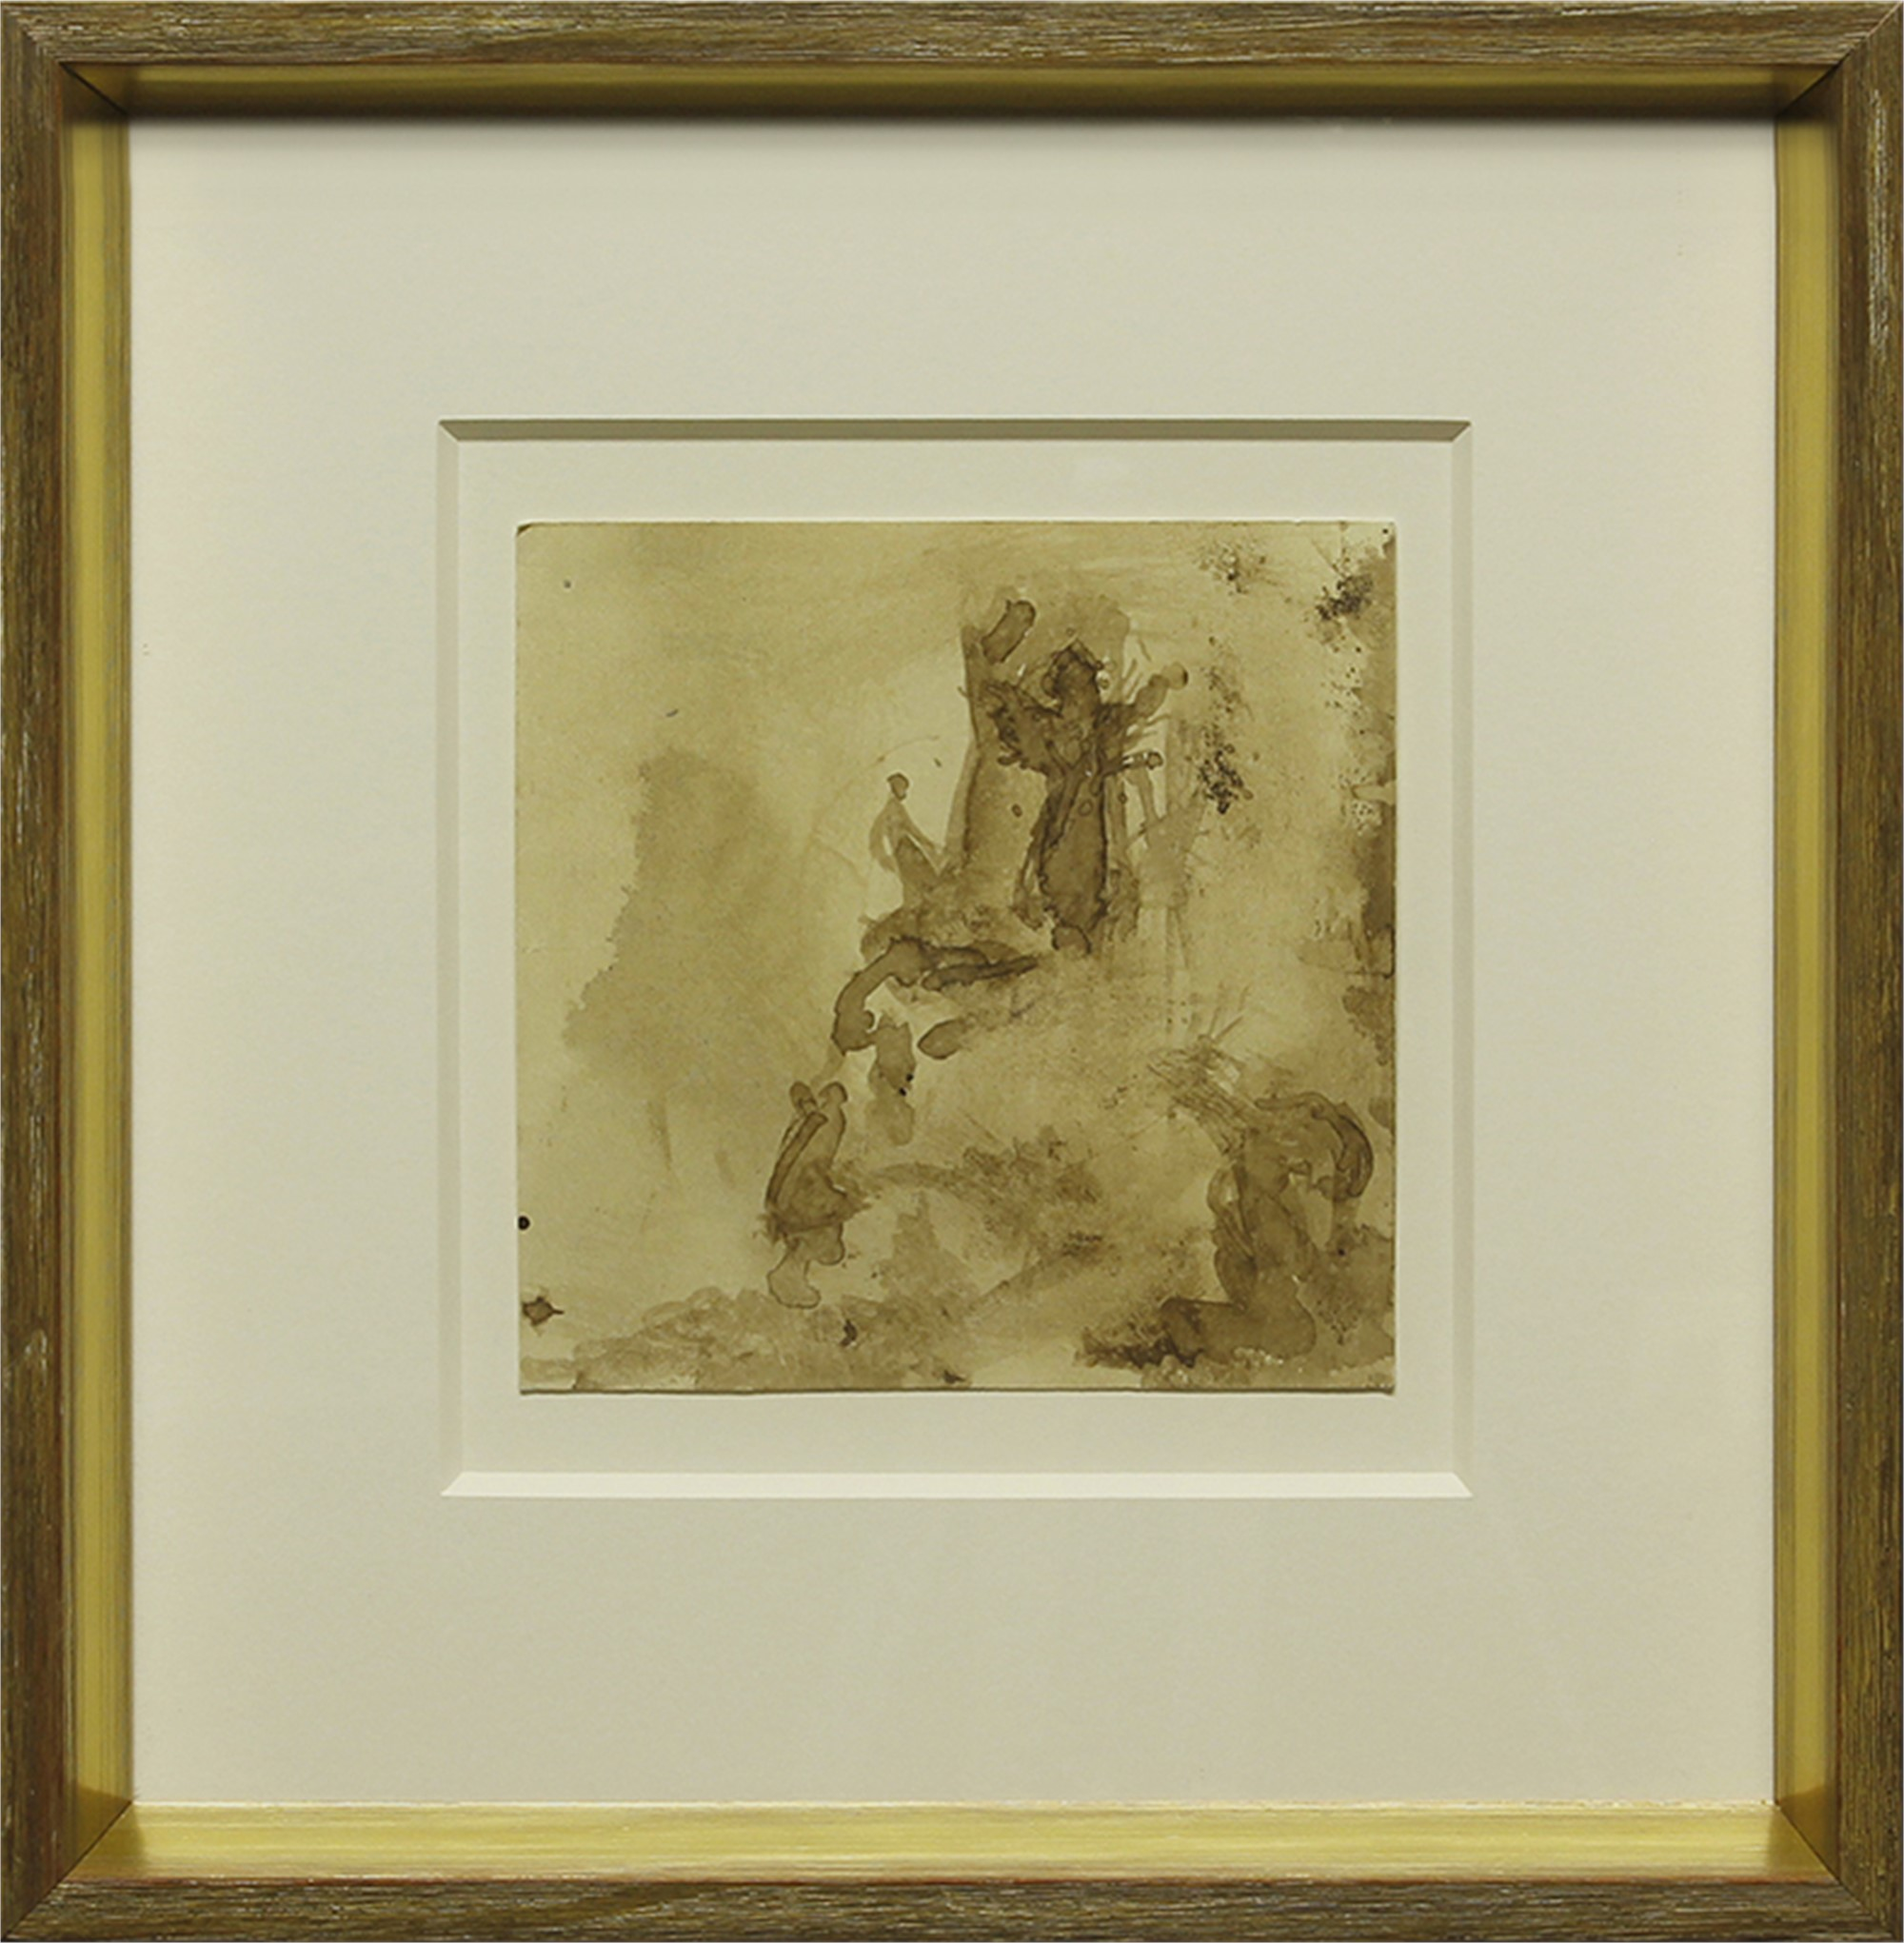 Steps in Sepia Series 8, 2018 by Gail Foster